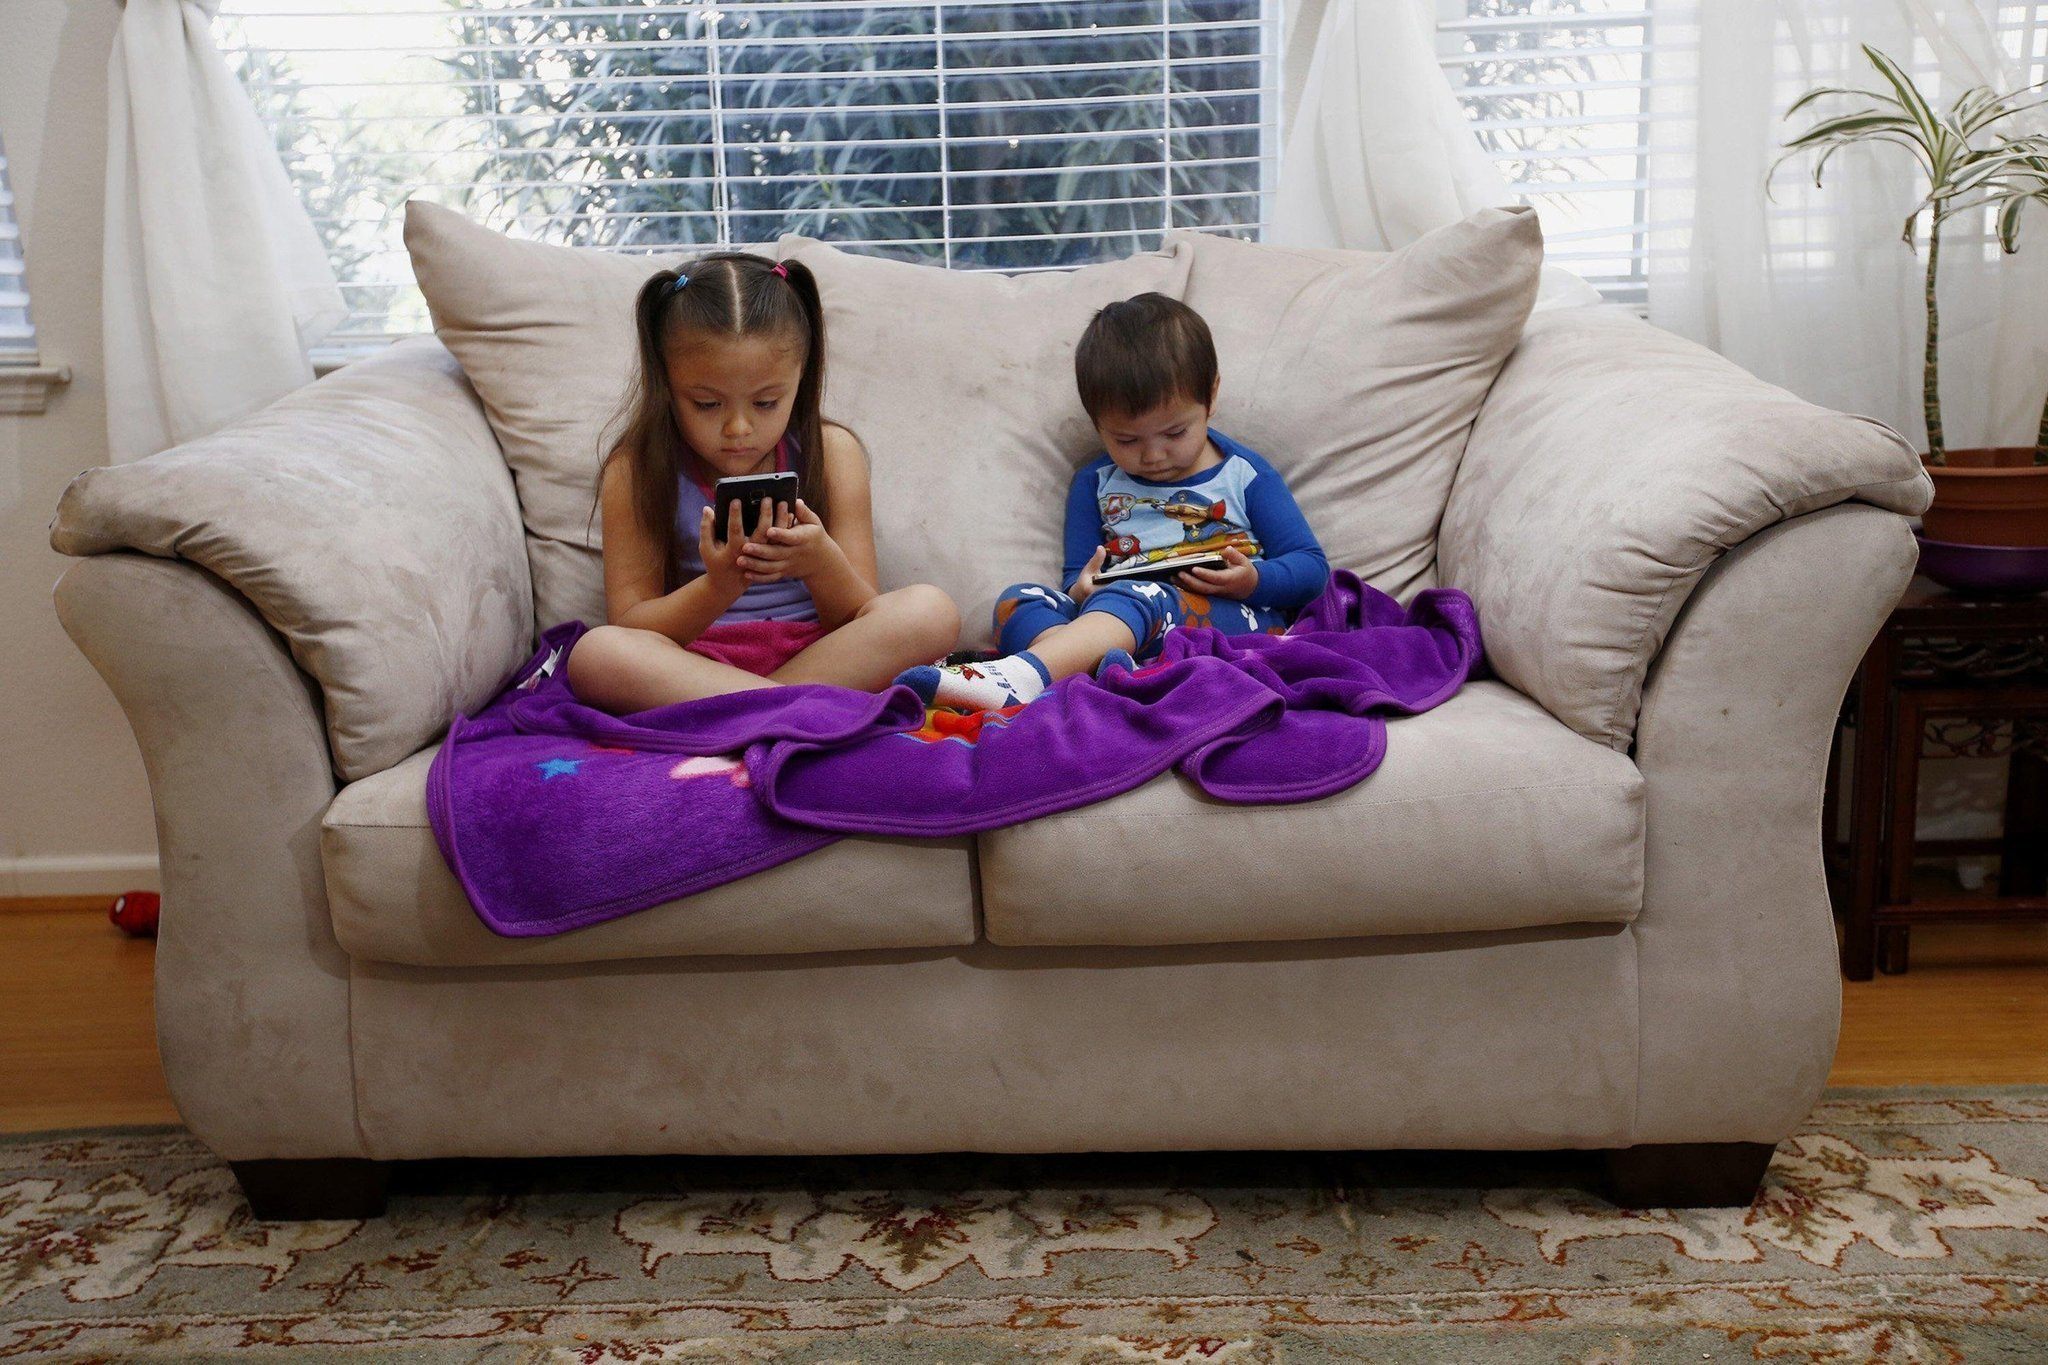 For Kids Youtube And Netflix Are The New Normal In Tv